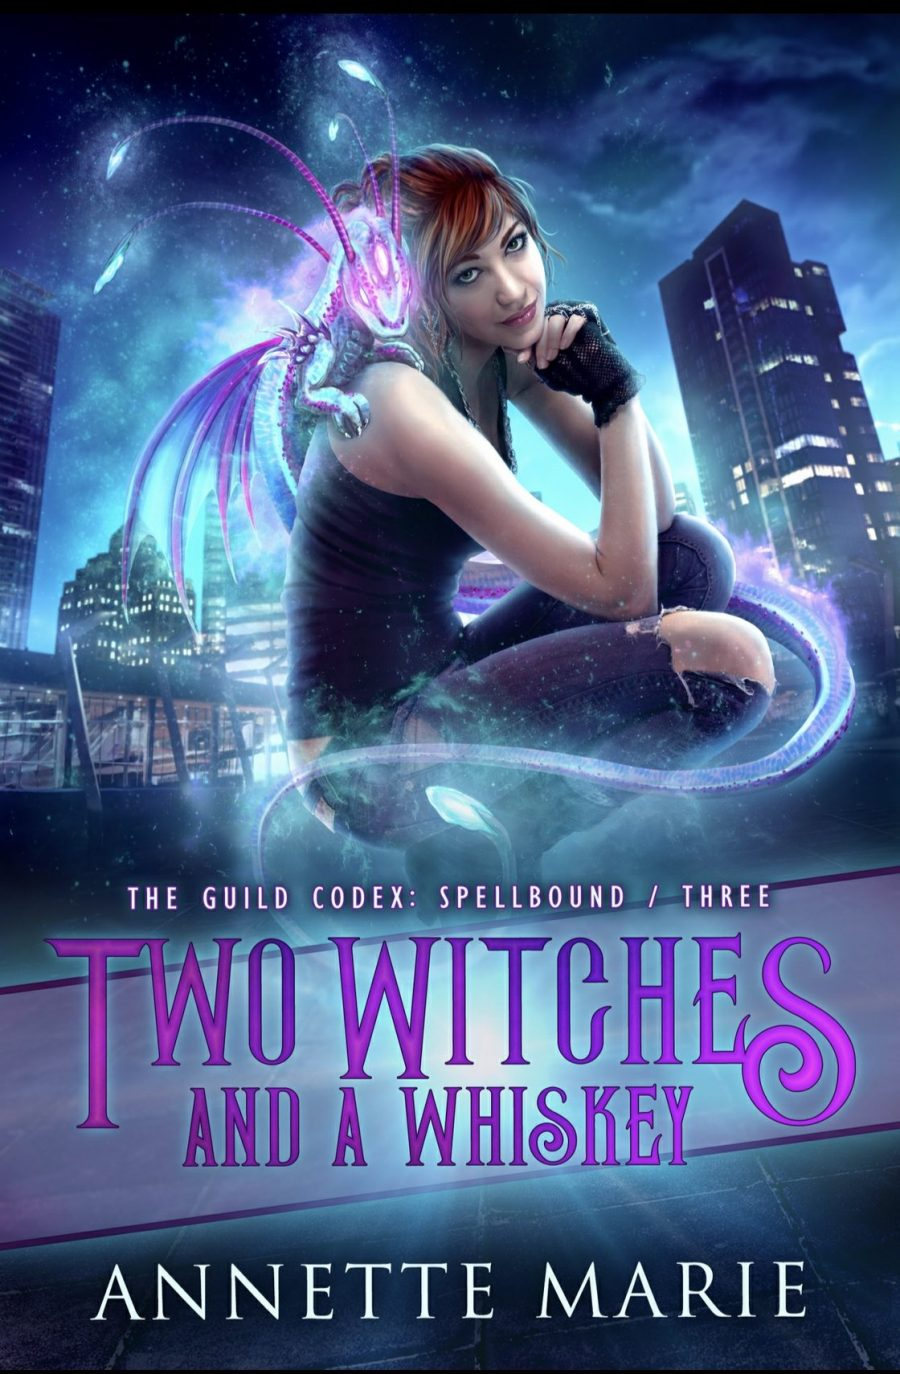 Two Witches and a Whiskey by Annette Marie - A Book Review #bookreview #bookblogger #UrbanFantasy #UF #Action #Magic #Witches #Druid